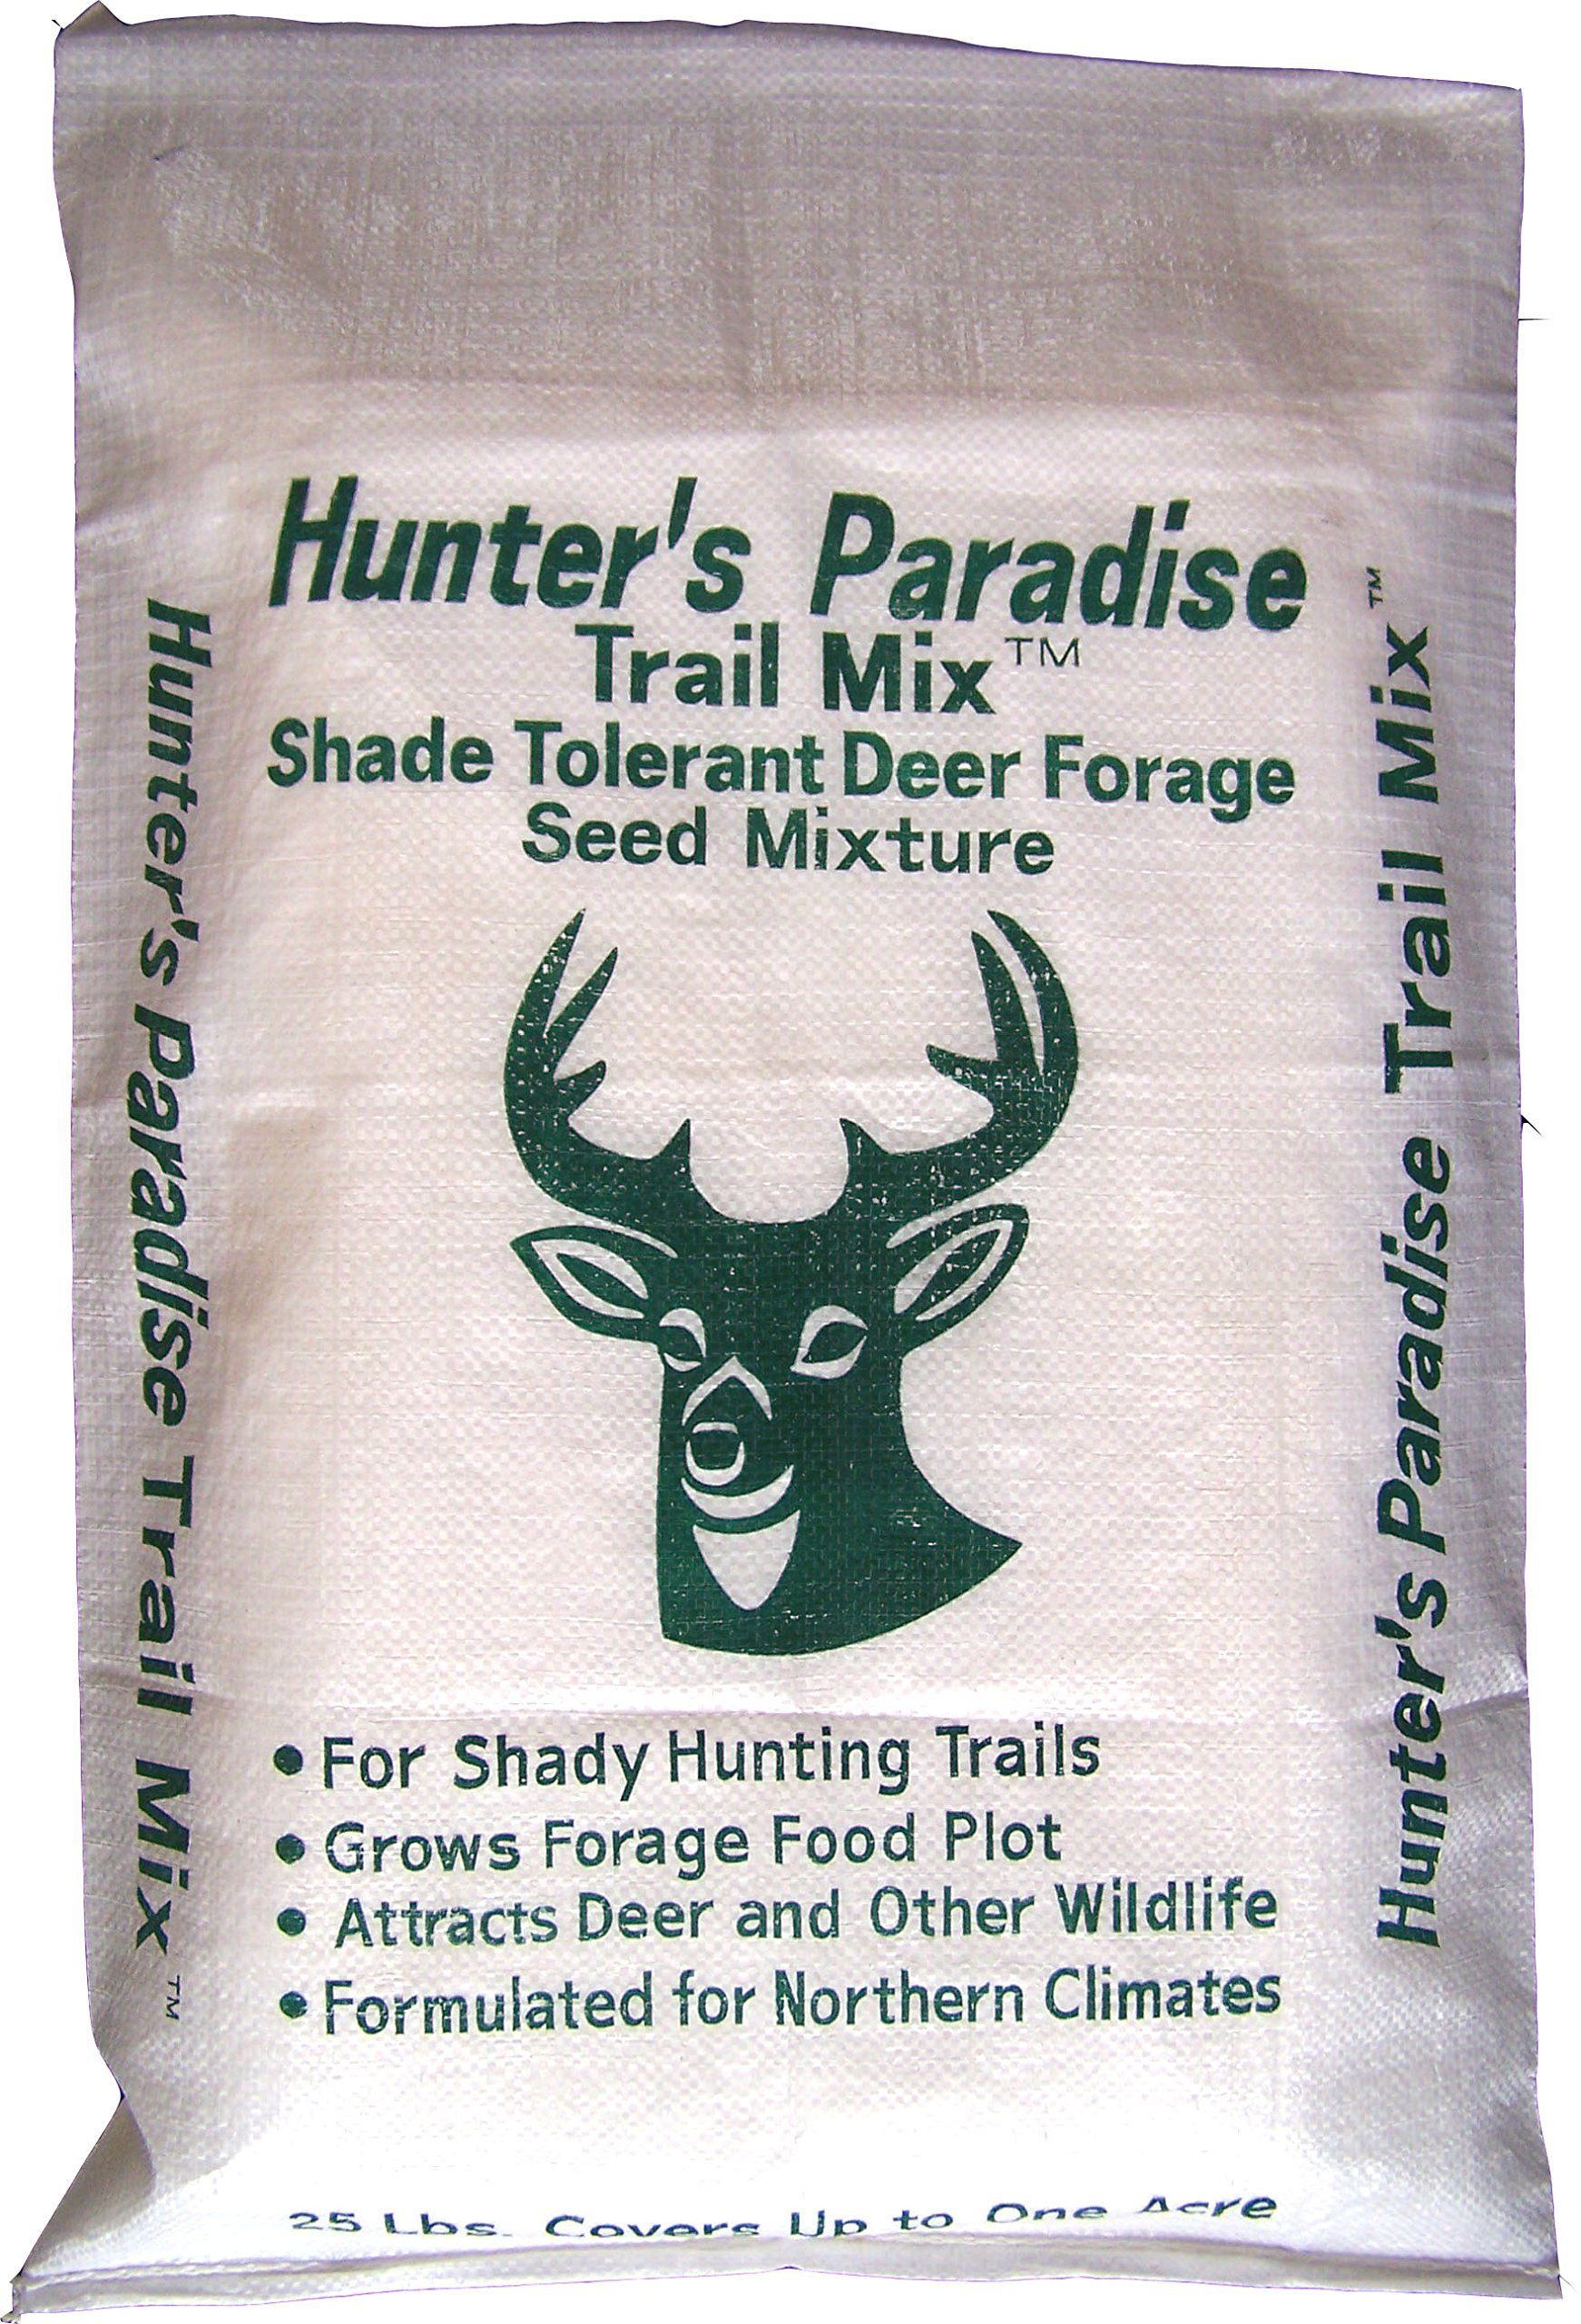 X-Seed 440FS0020UCT185-25 Food Plot Seed, 25 by X-Seed